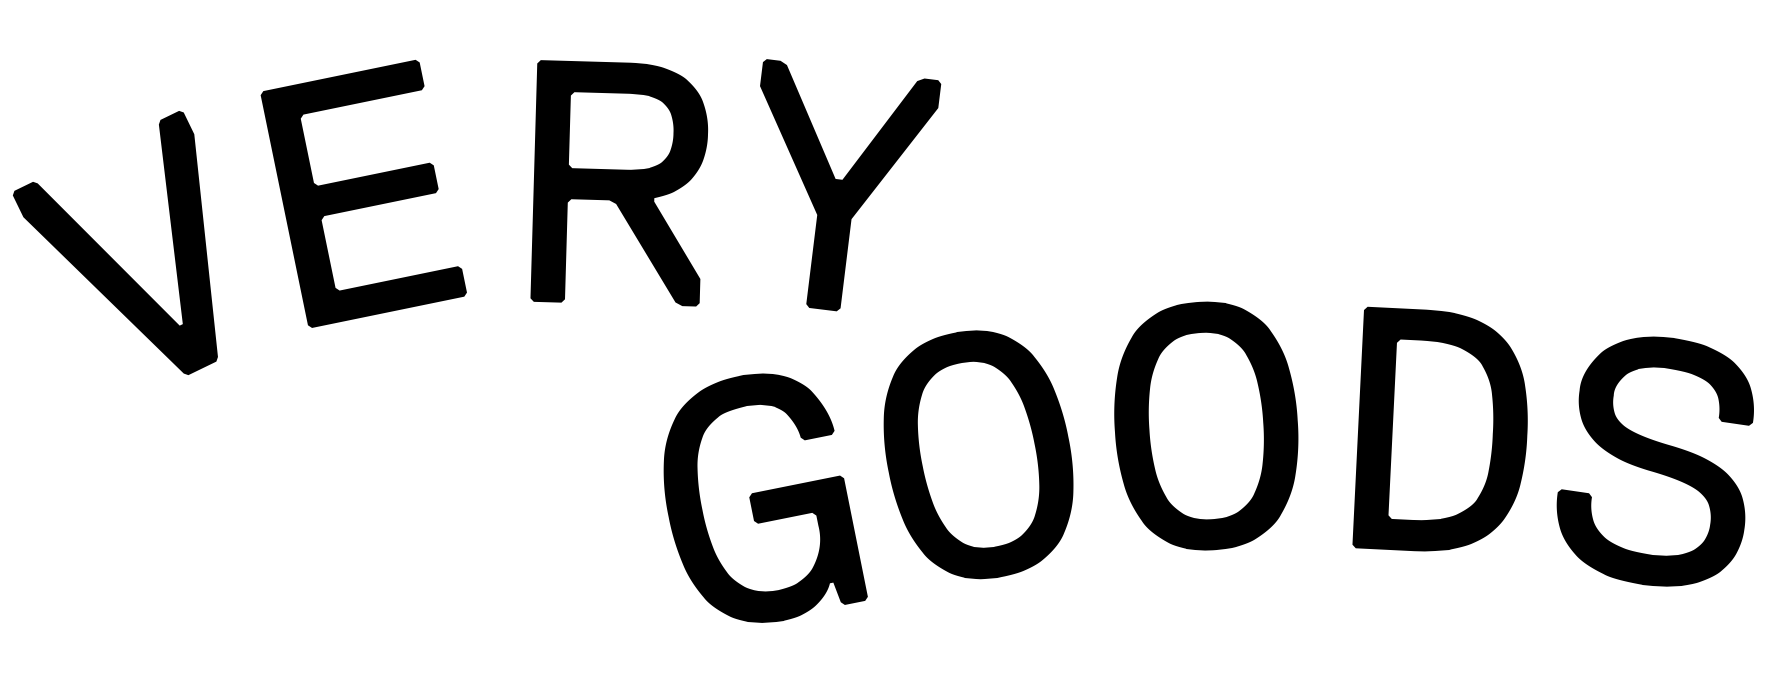 Very Goods Logo